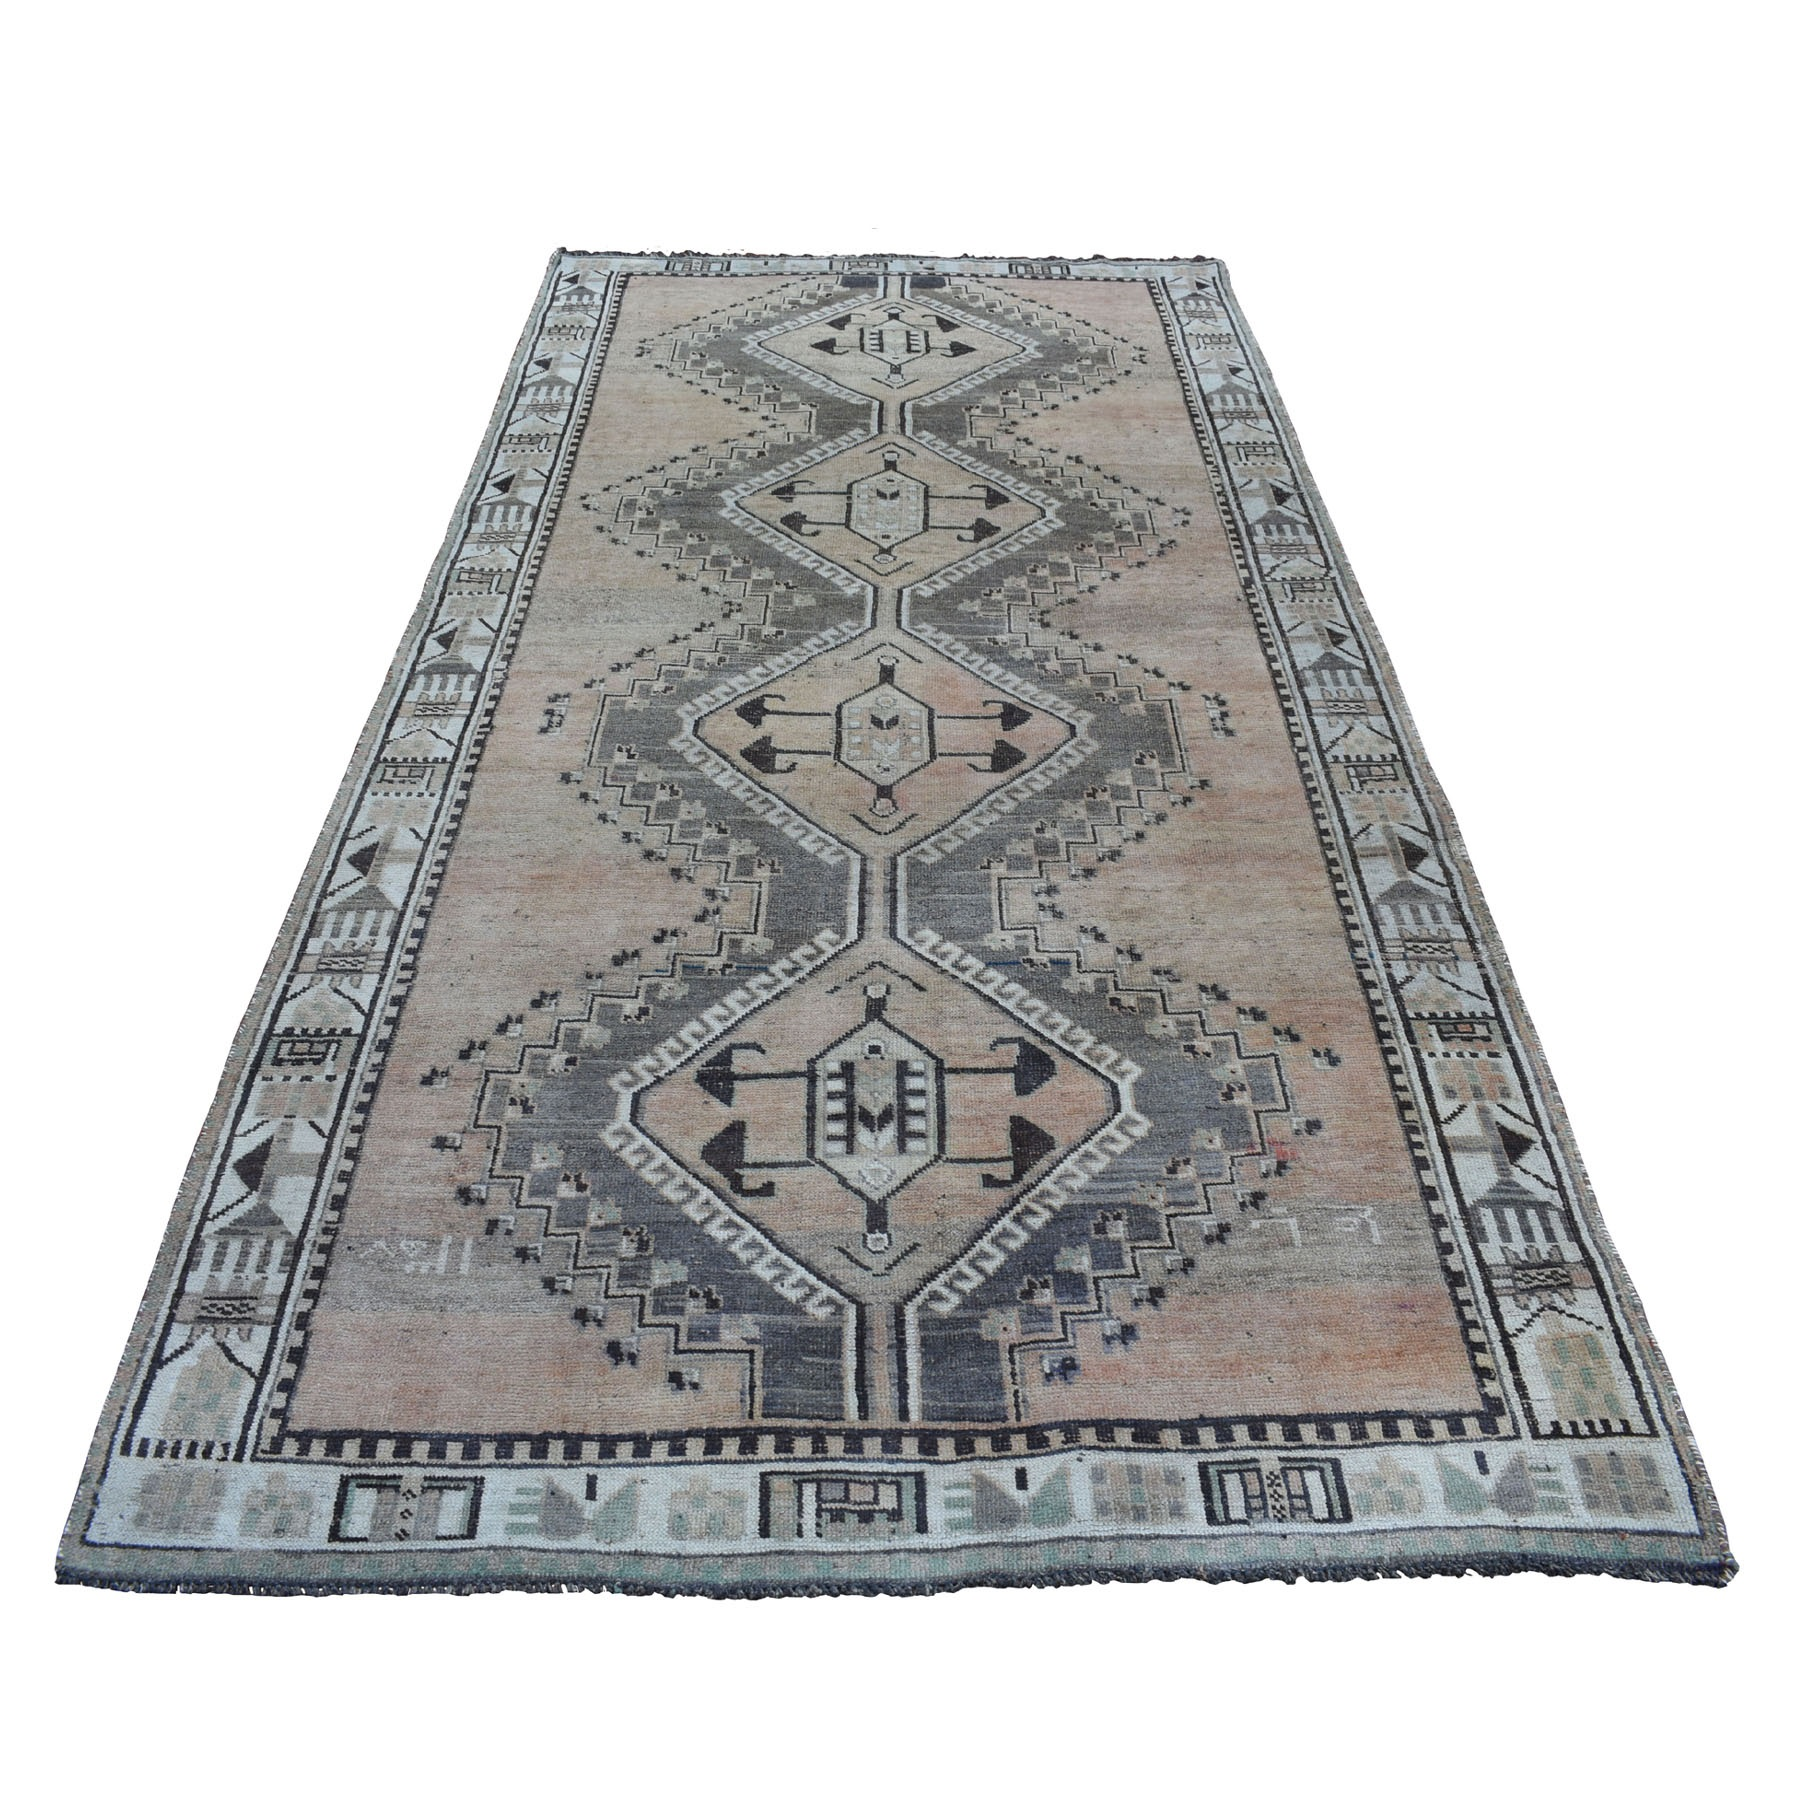 5'x10' Vintage And Worn Down Distressed Colors Persian Qashqai Wide Runner Hand Woven Bohemian Rug